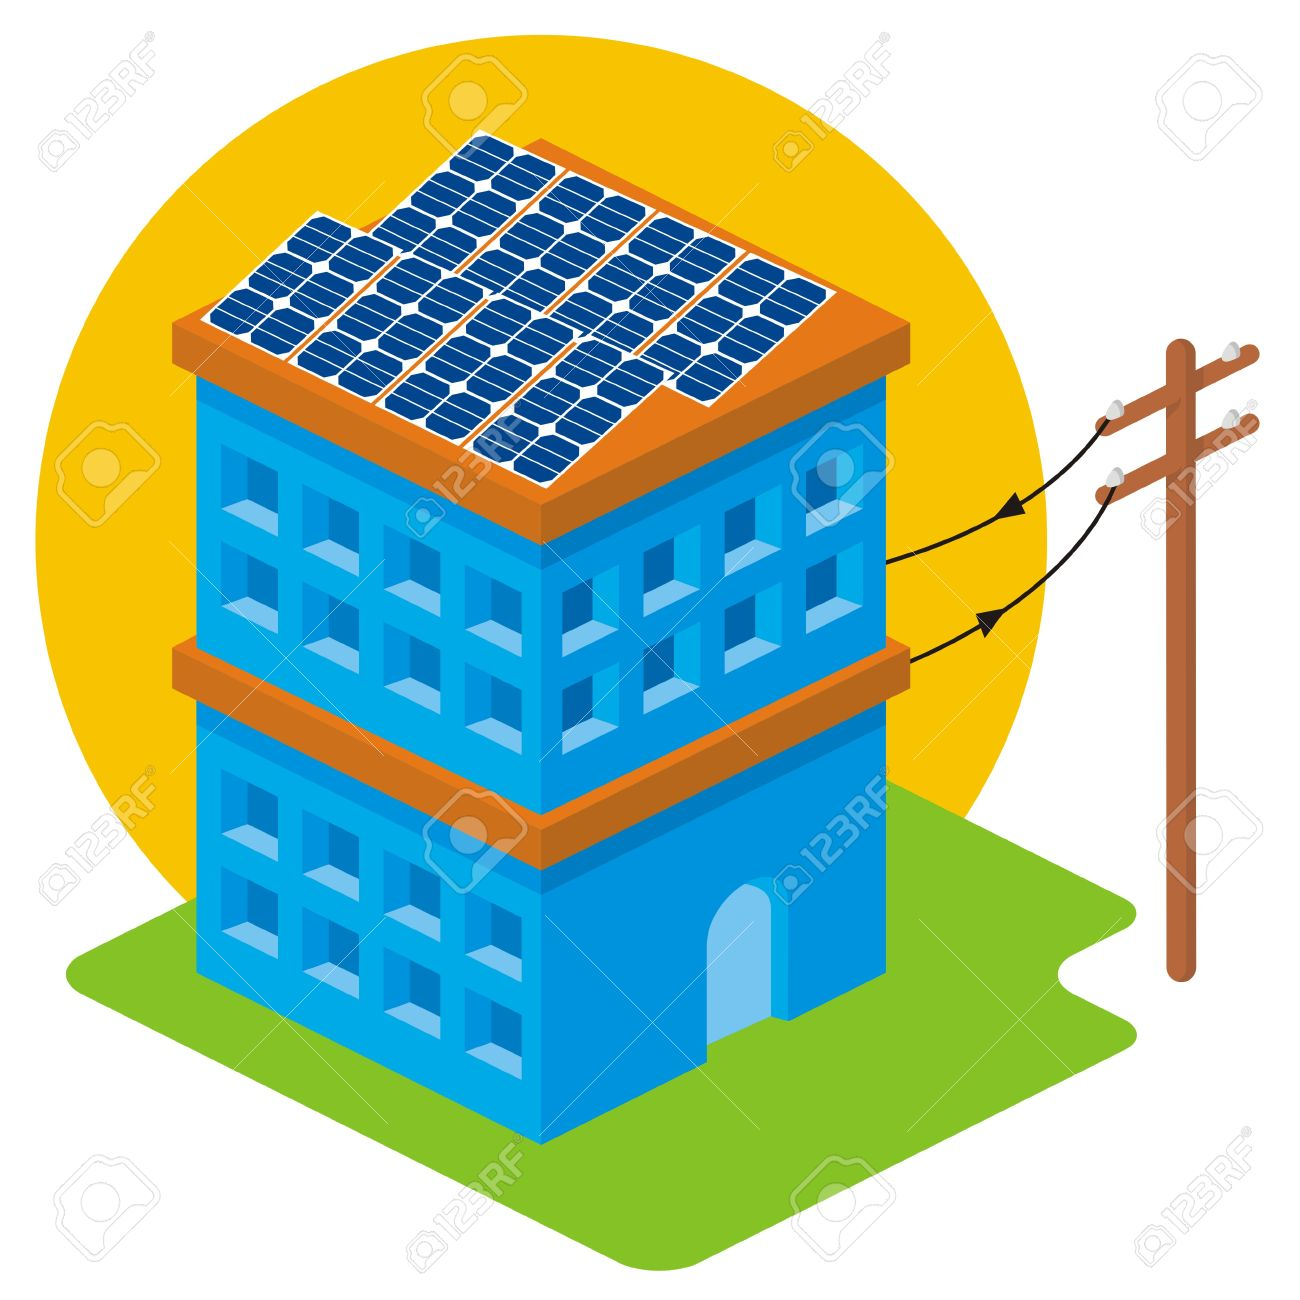 Isometric house with solar panels on roof connected to electricity pole - 8481393